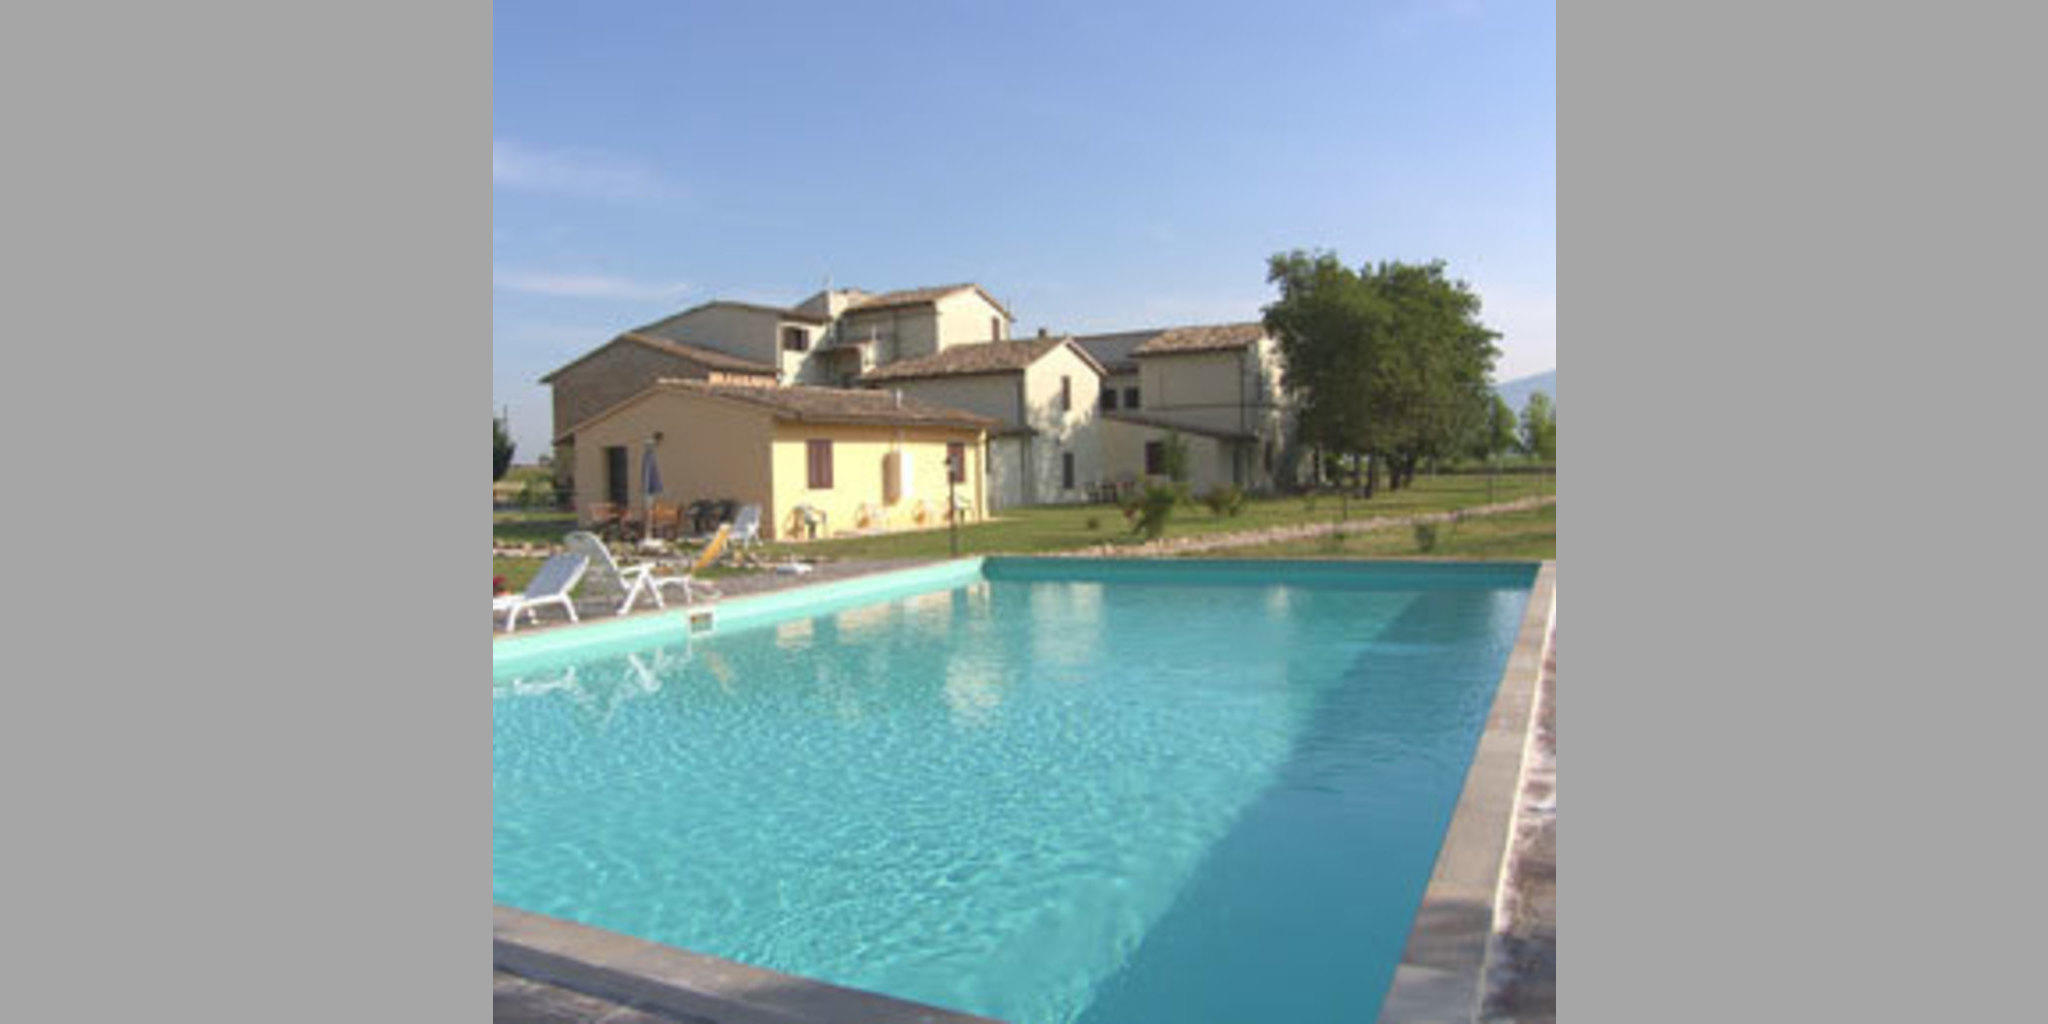 Bed & Breakfast Bevagna - Vocabolo Cantone